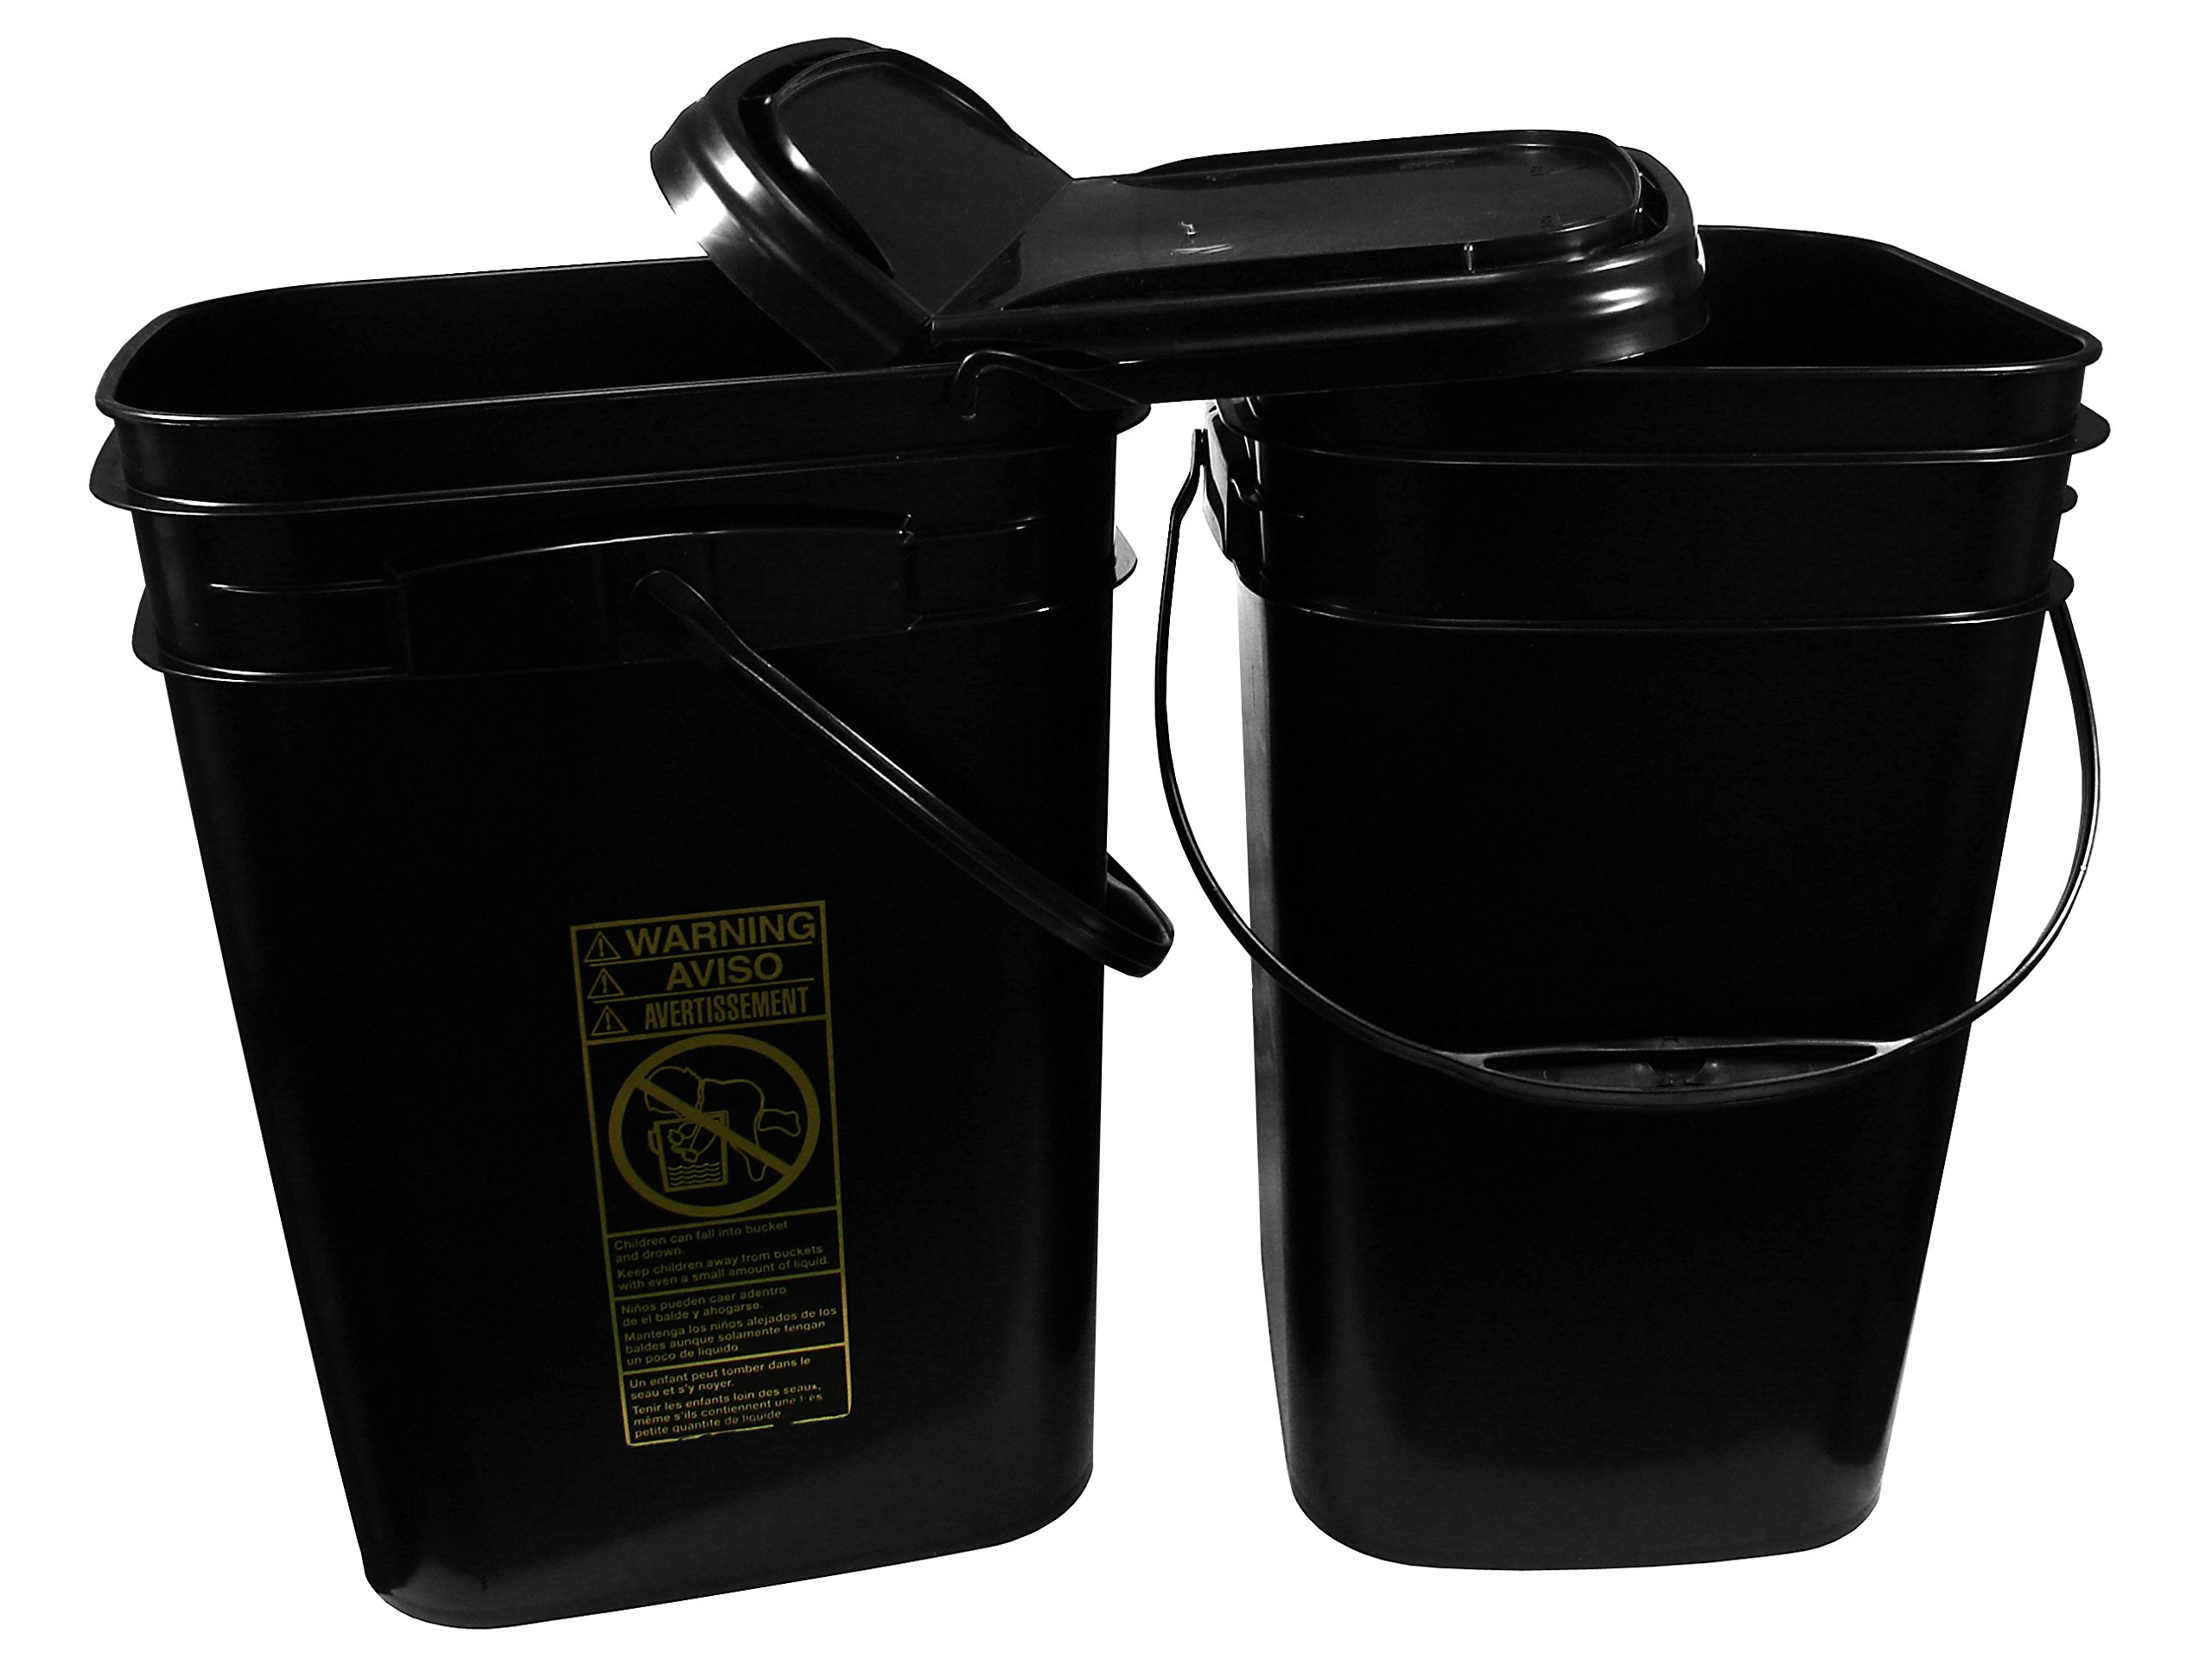 5.3 Gallon Black Rectangular Bucket/Pail with Hinged Snap Lid, 2 Pack by API Kirk Containers (Image #1)